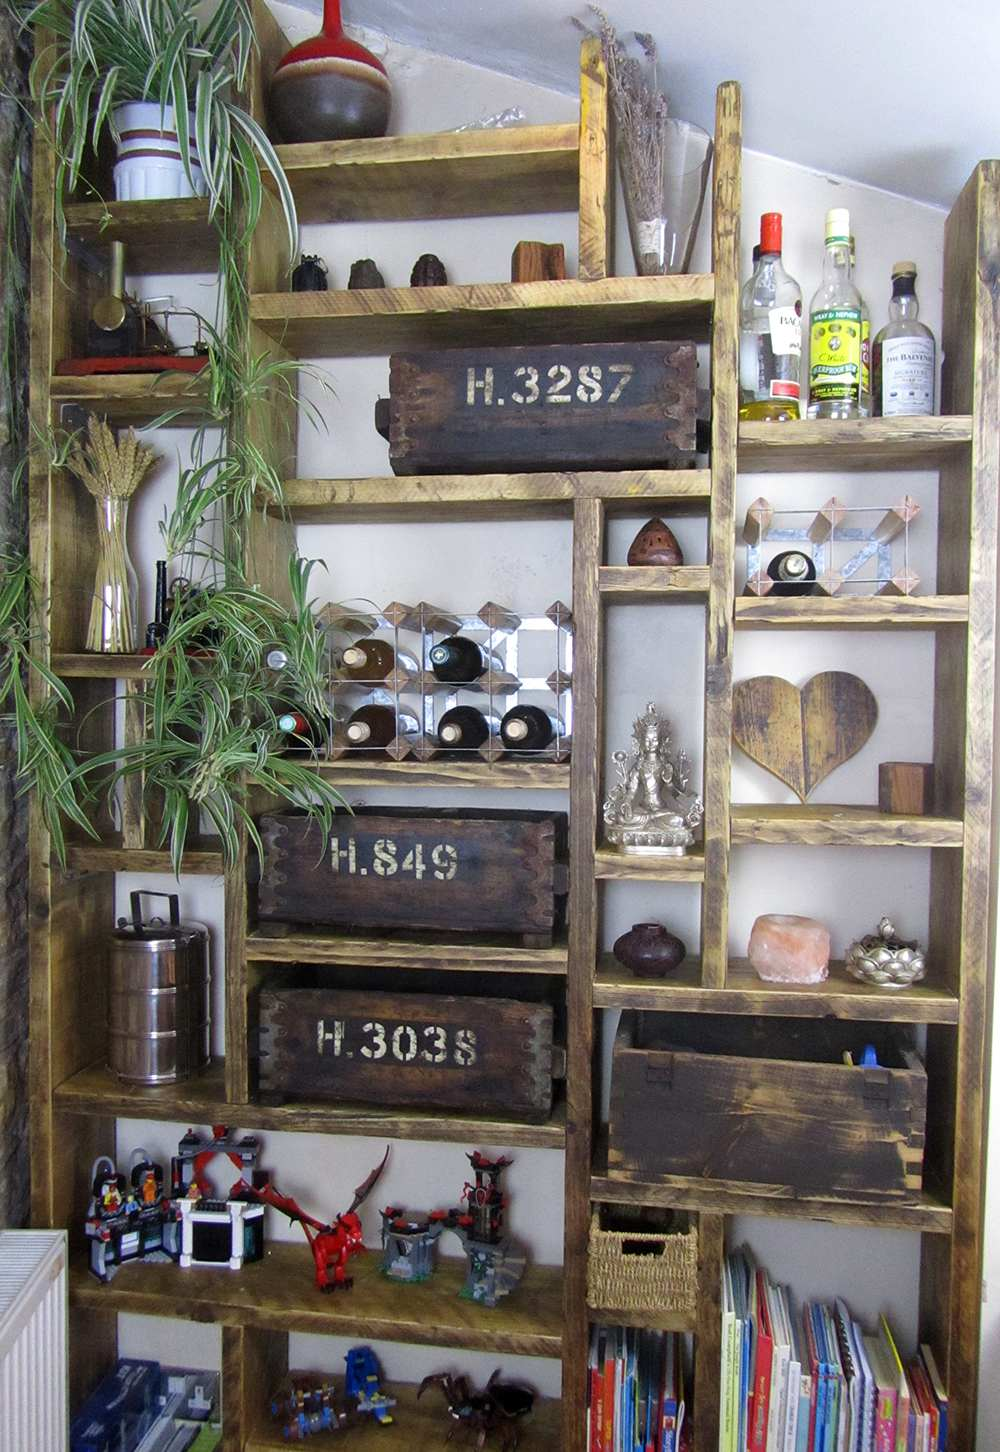 Bespoke shelving solution made from reclaimed wood